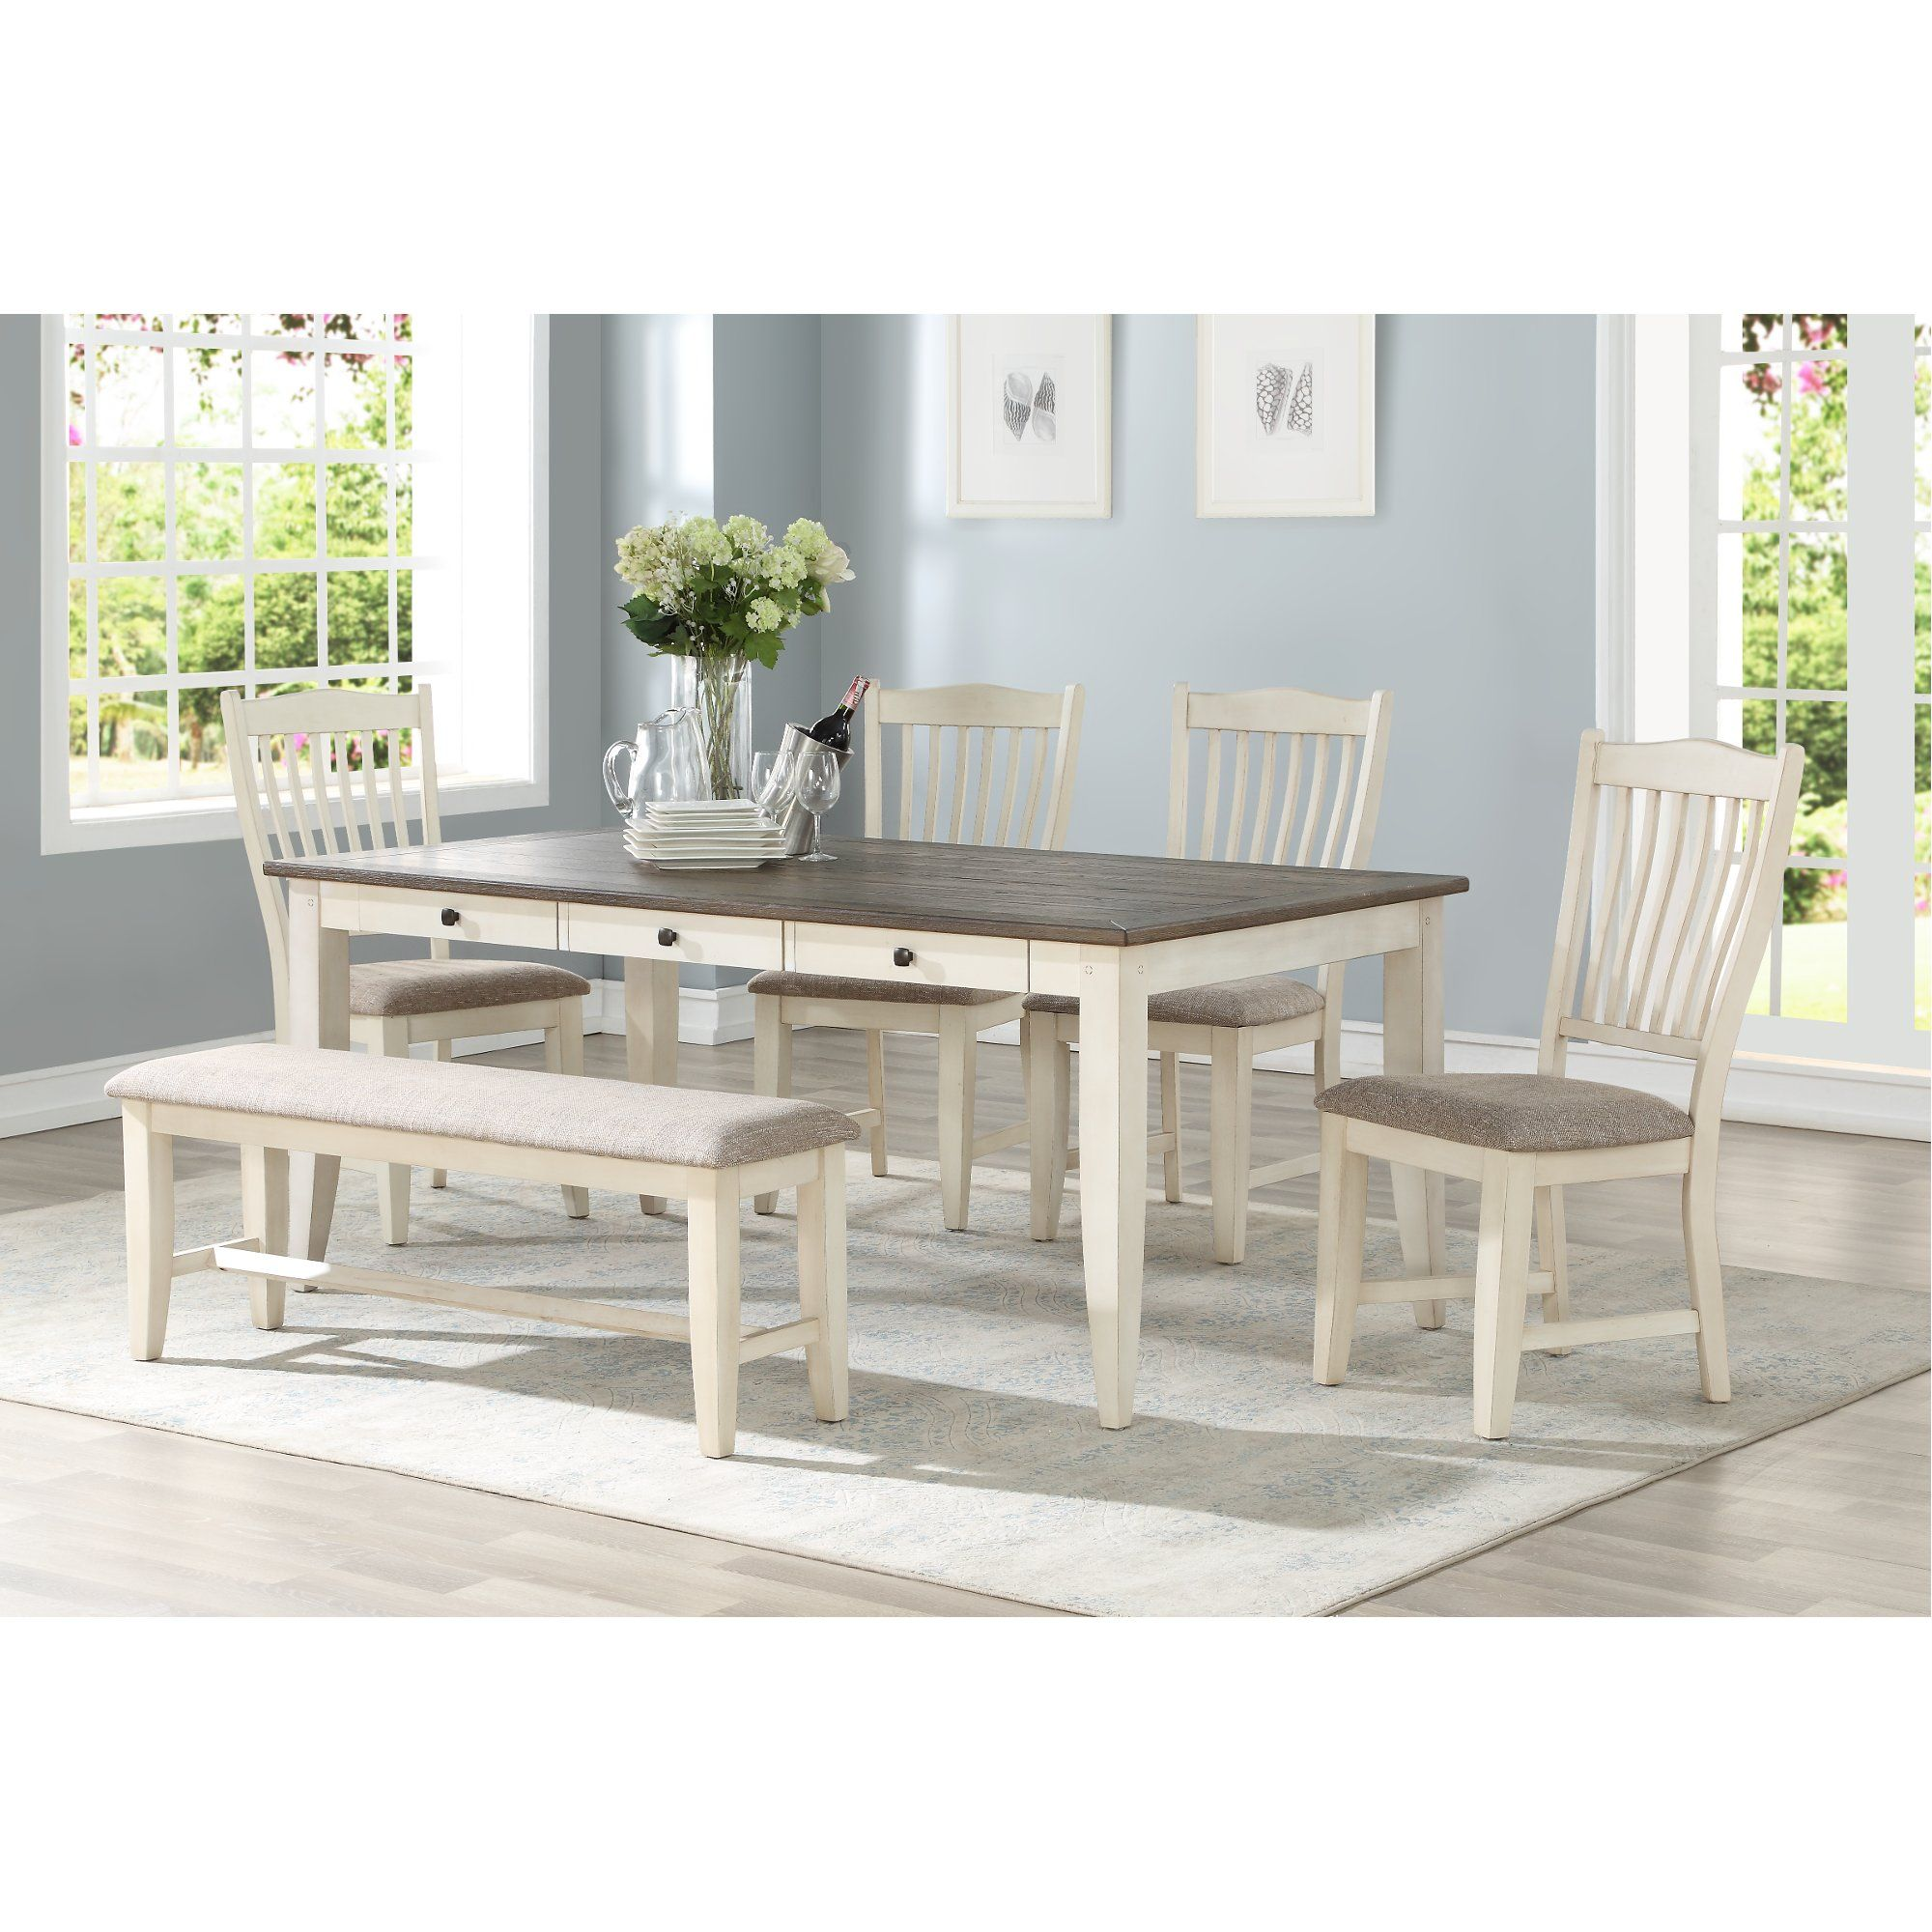 White And Gray 5 Piece Dining Set Grace Grey Dining Room Table